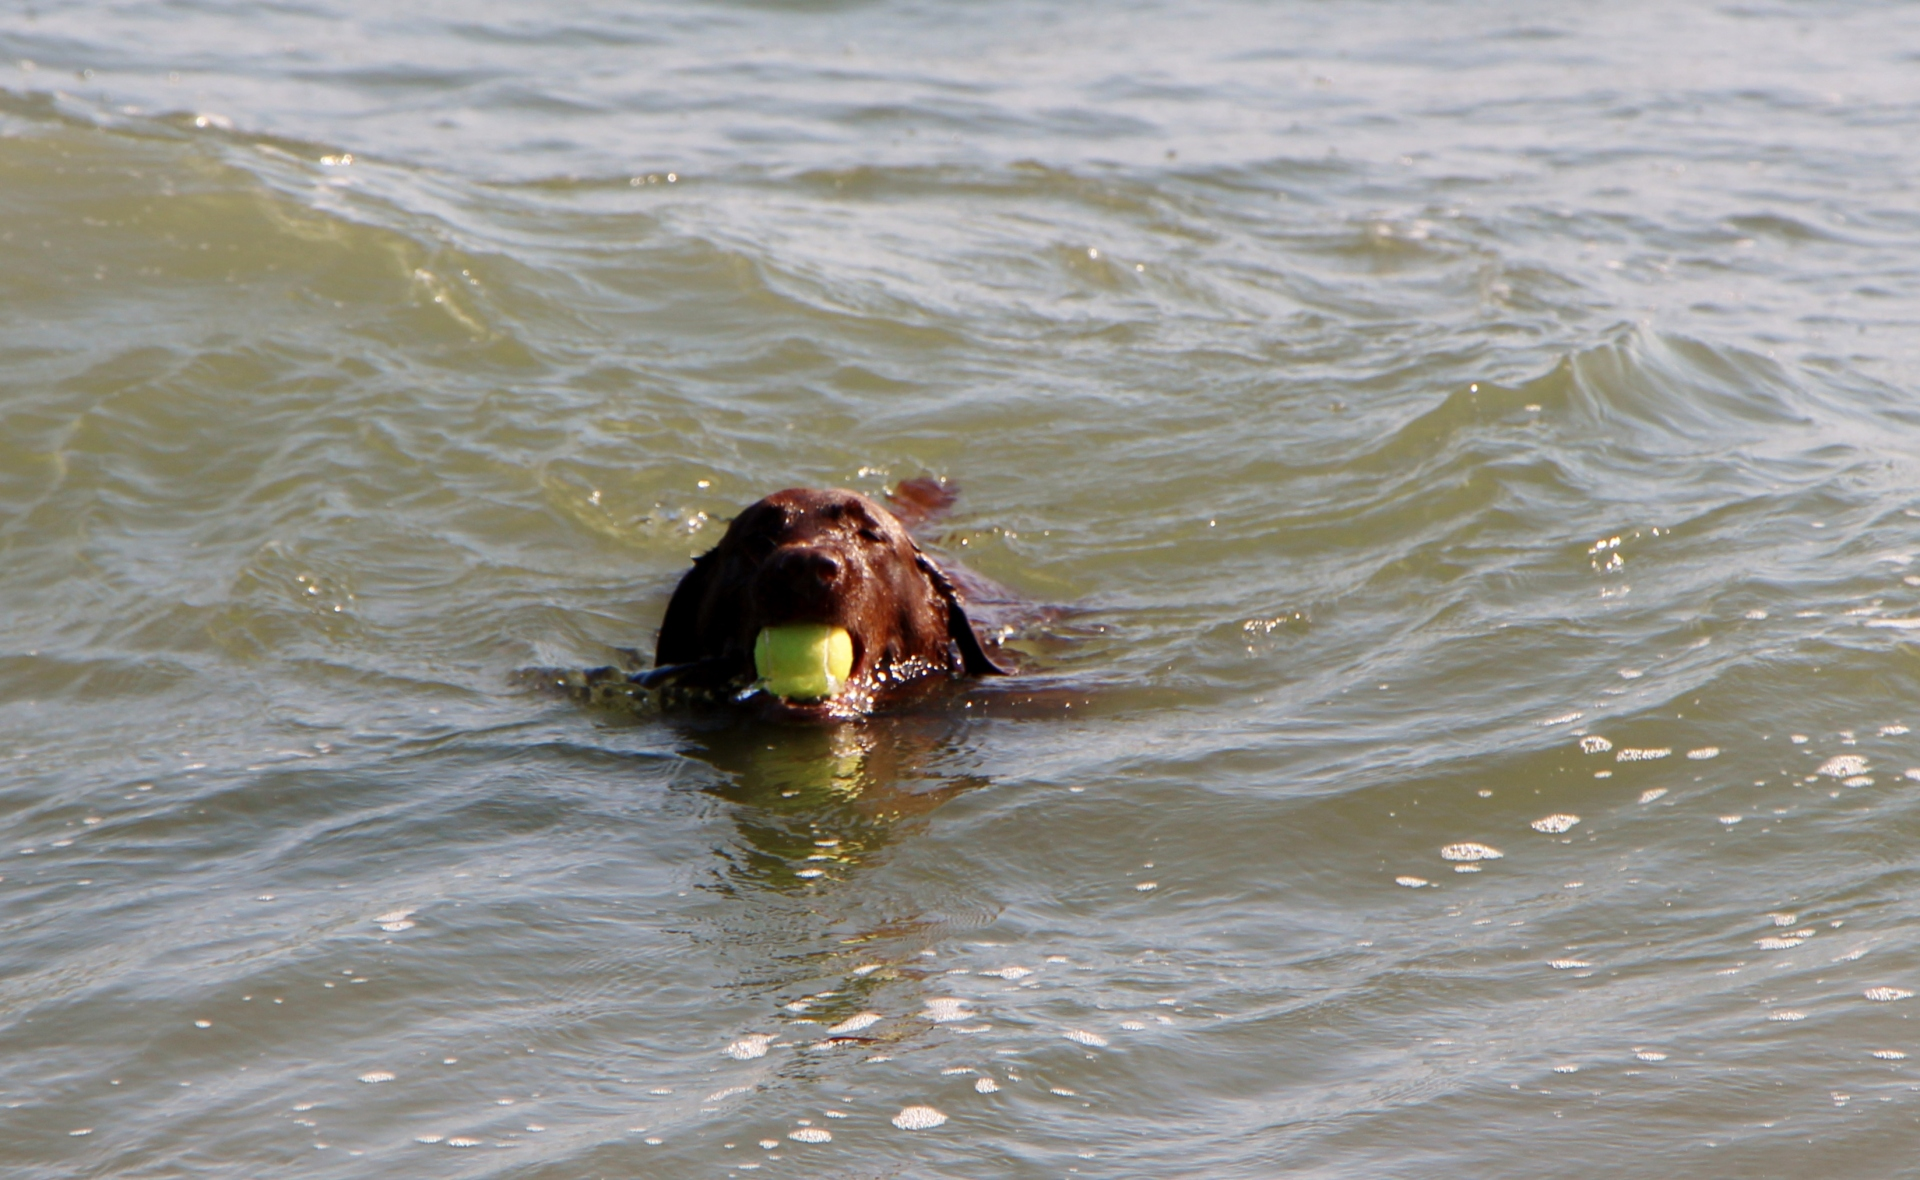 Grace, a chocolate Labrador, loved chasing a tennis ball into the waters off of Long Beach, Calif.